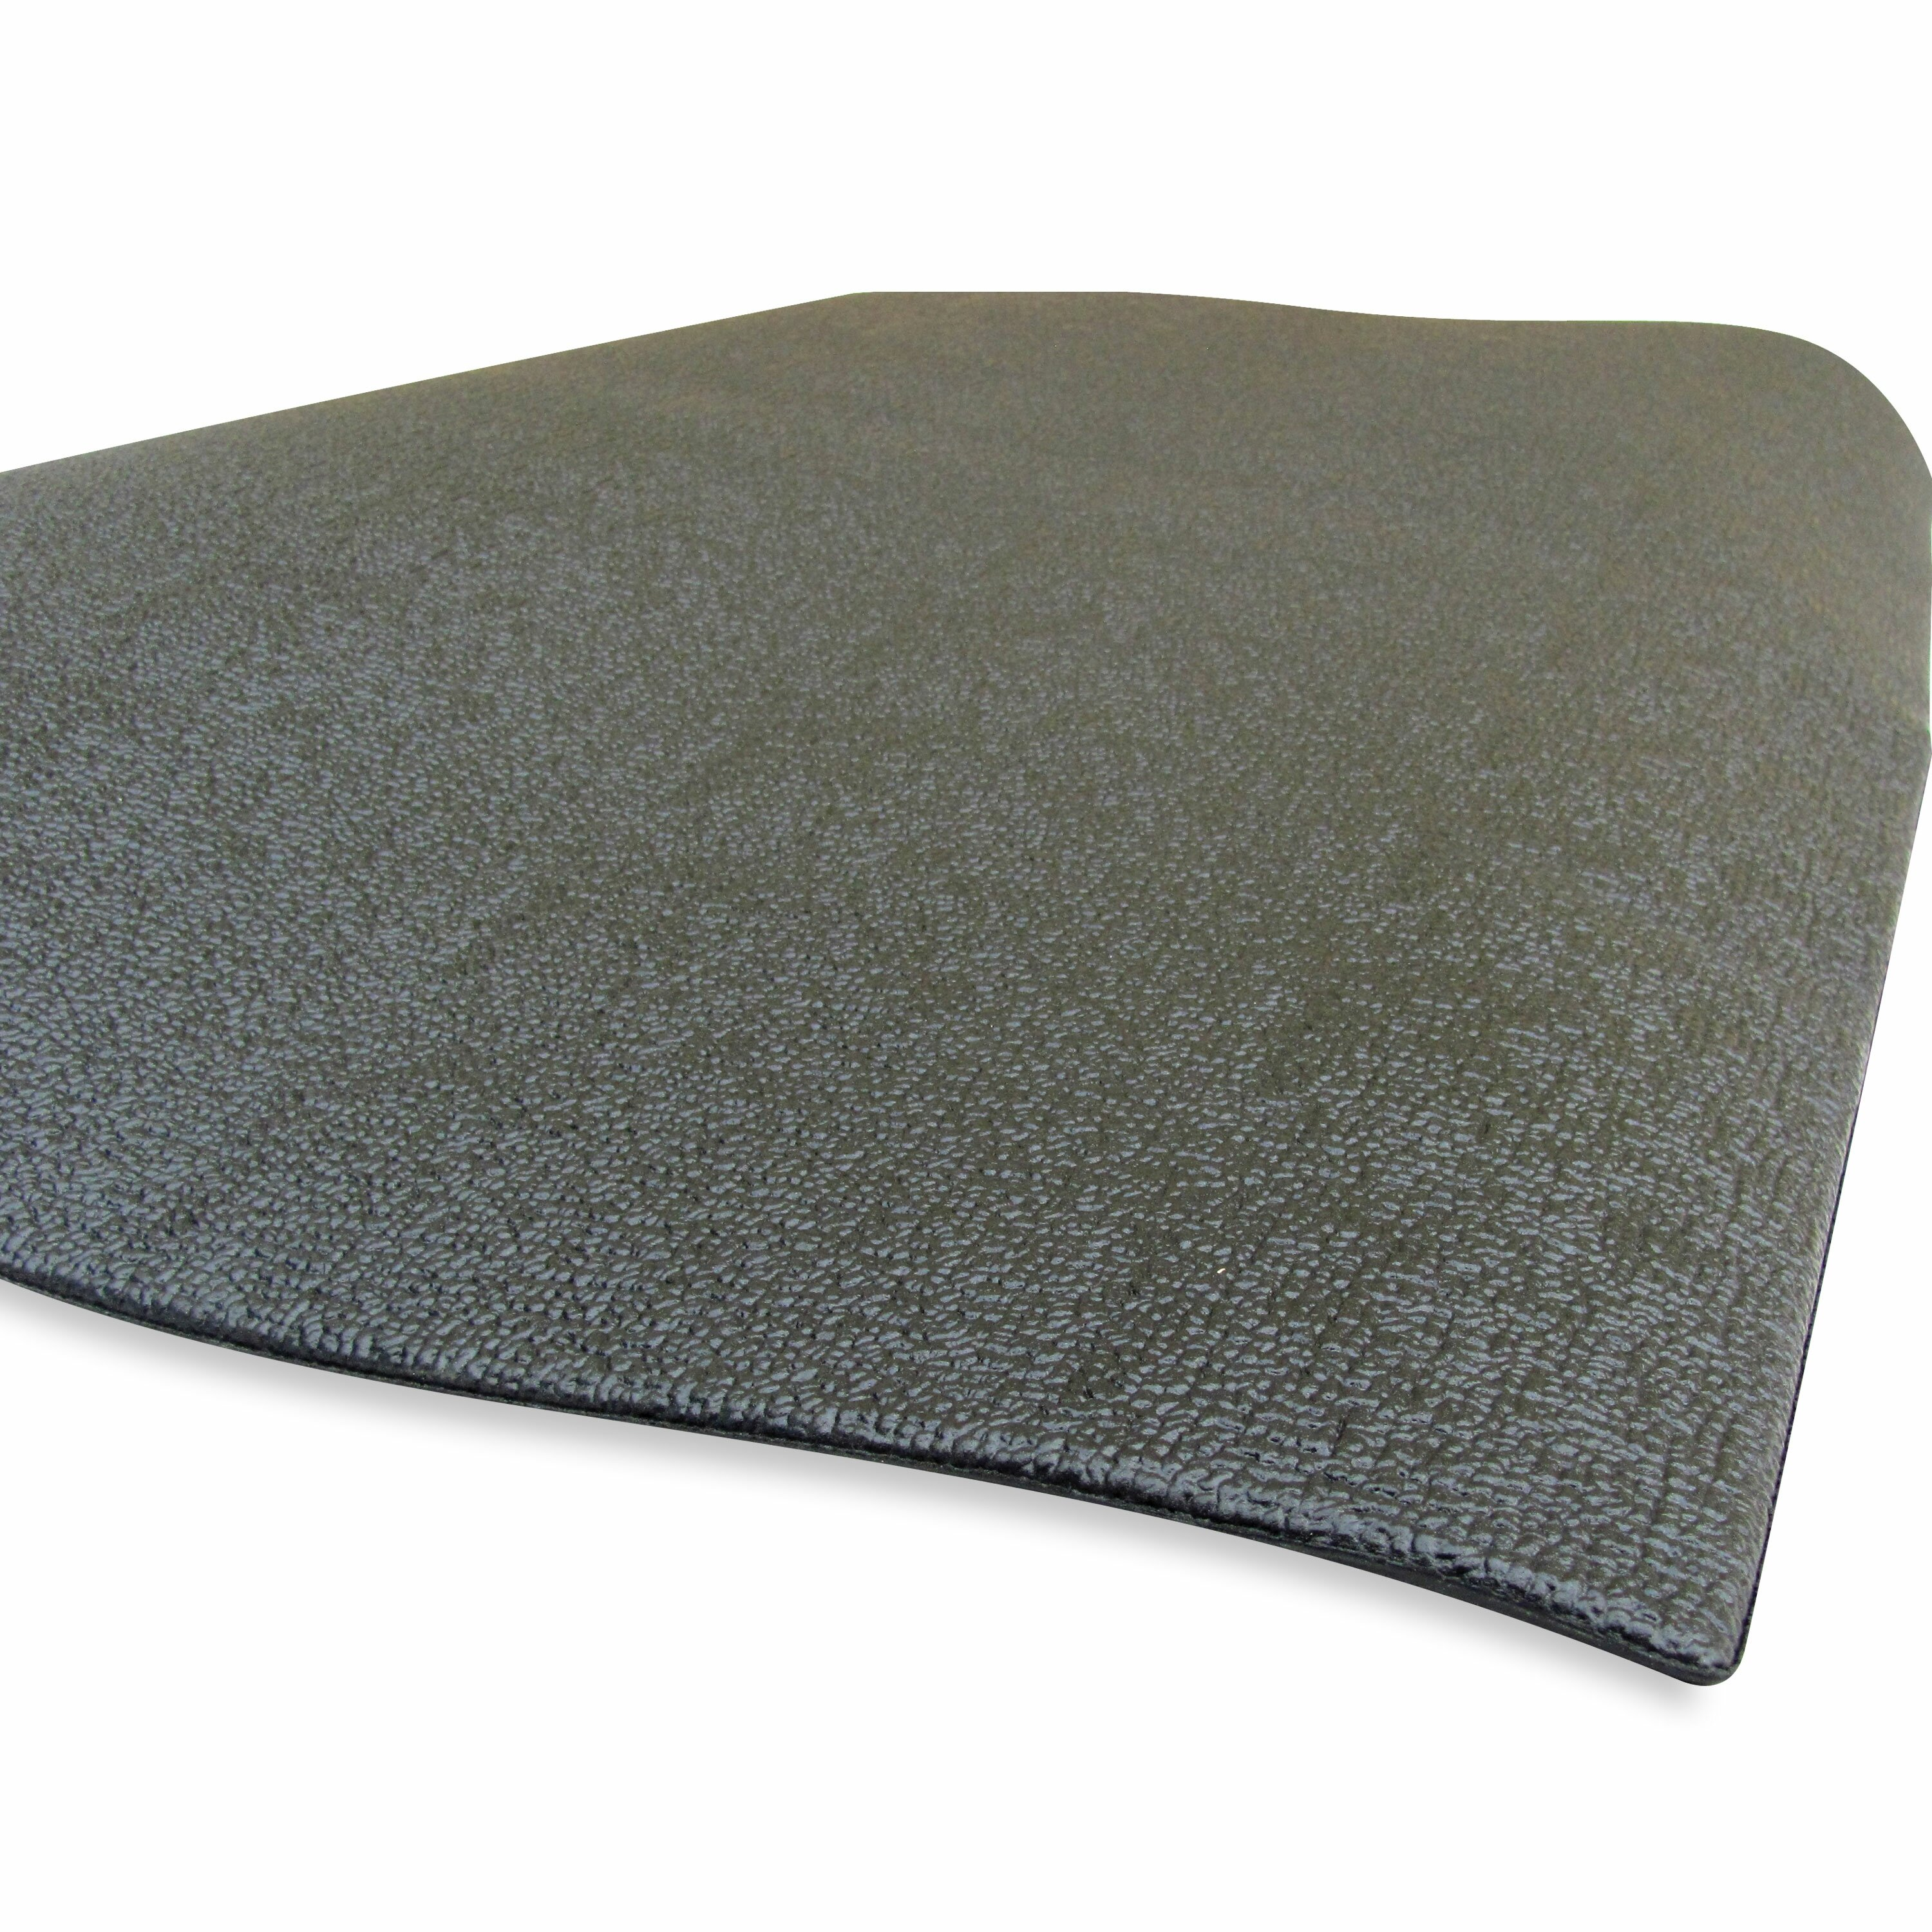 Rubber mats diamond plate - Definity Premium Mat For Treadmills And Ellipticals